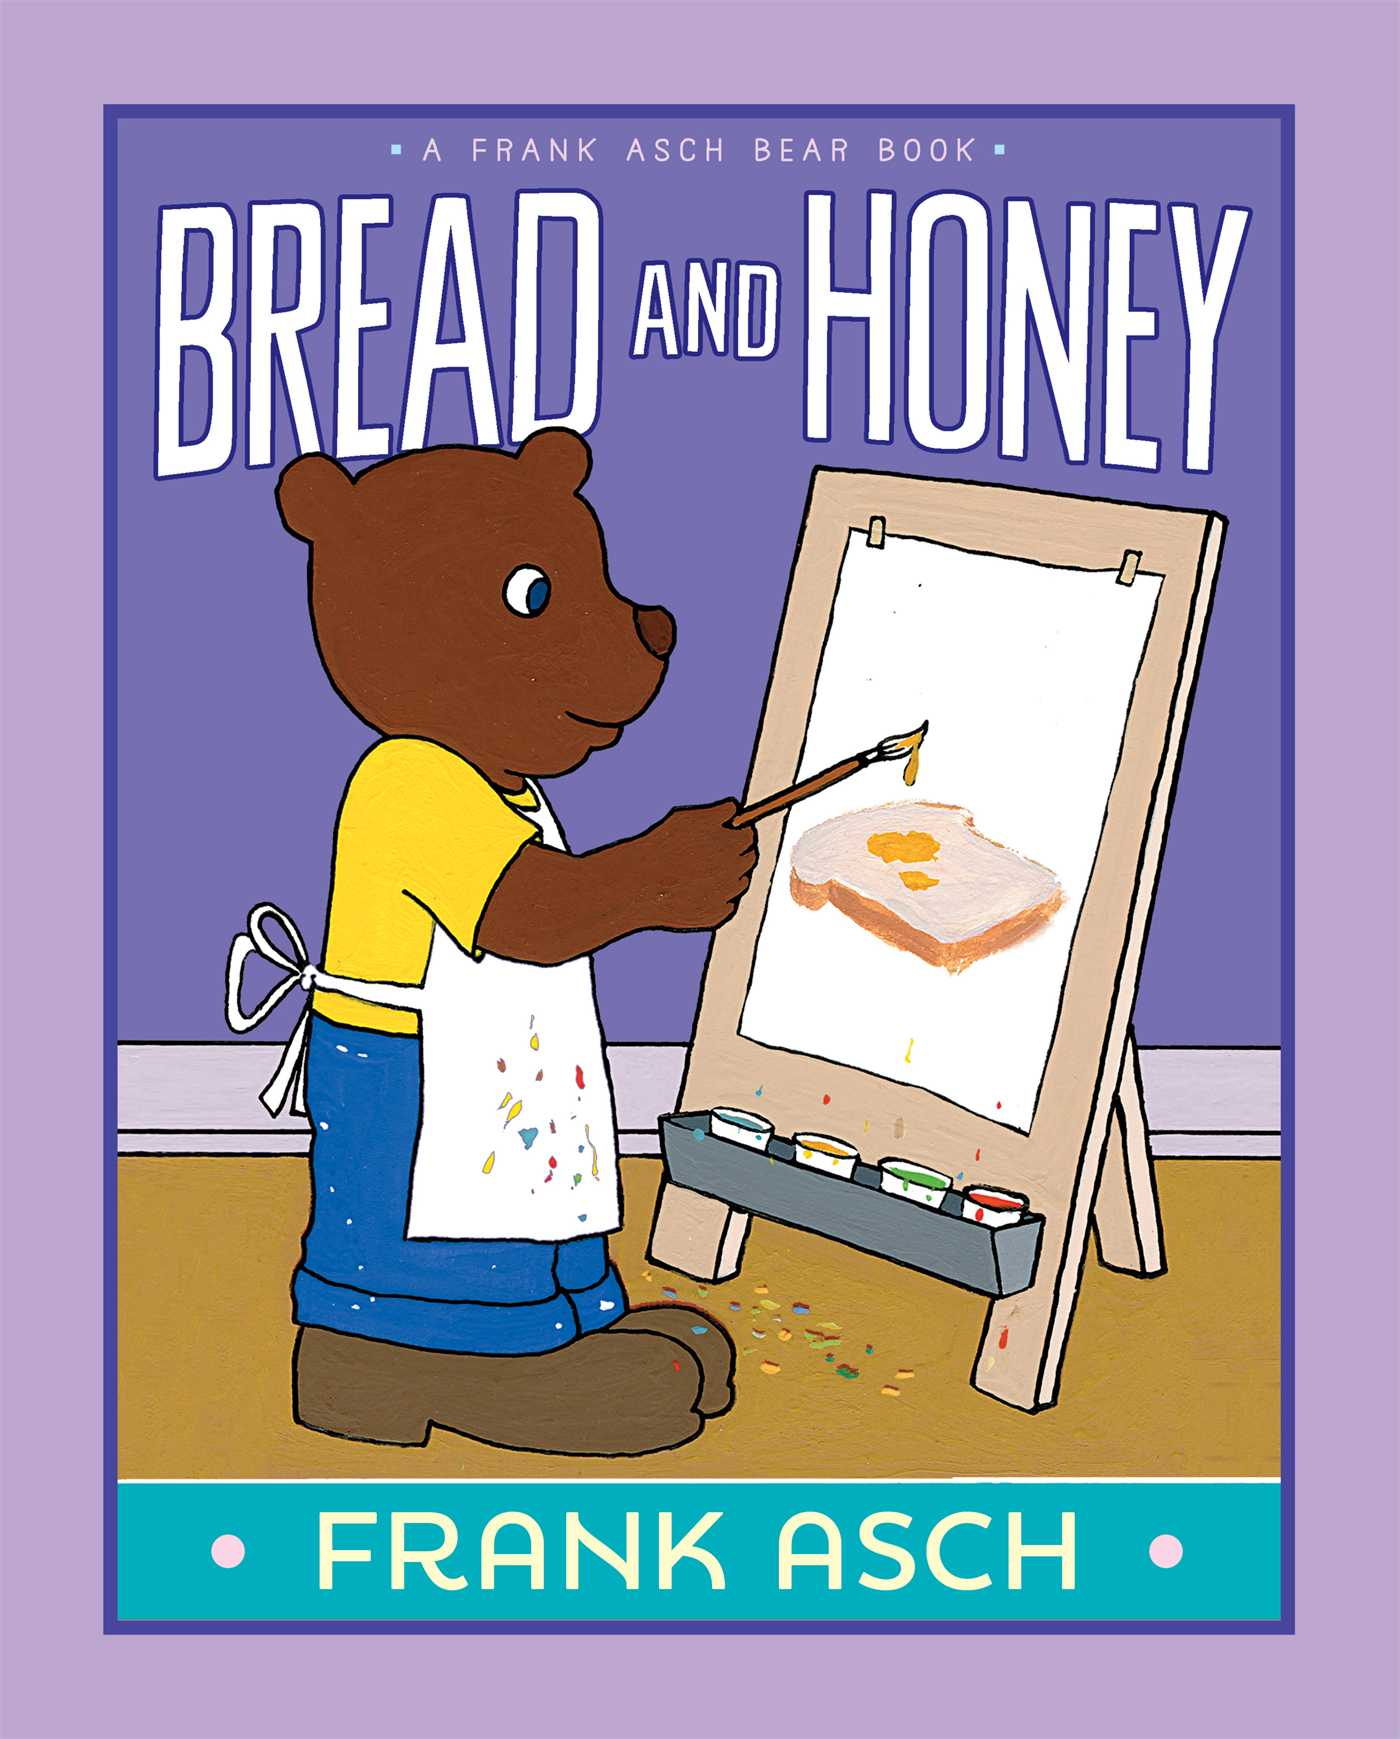 Bread-and-honey-9781442466654_hr